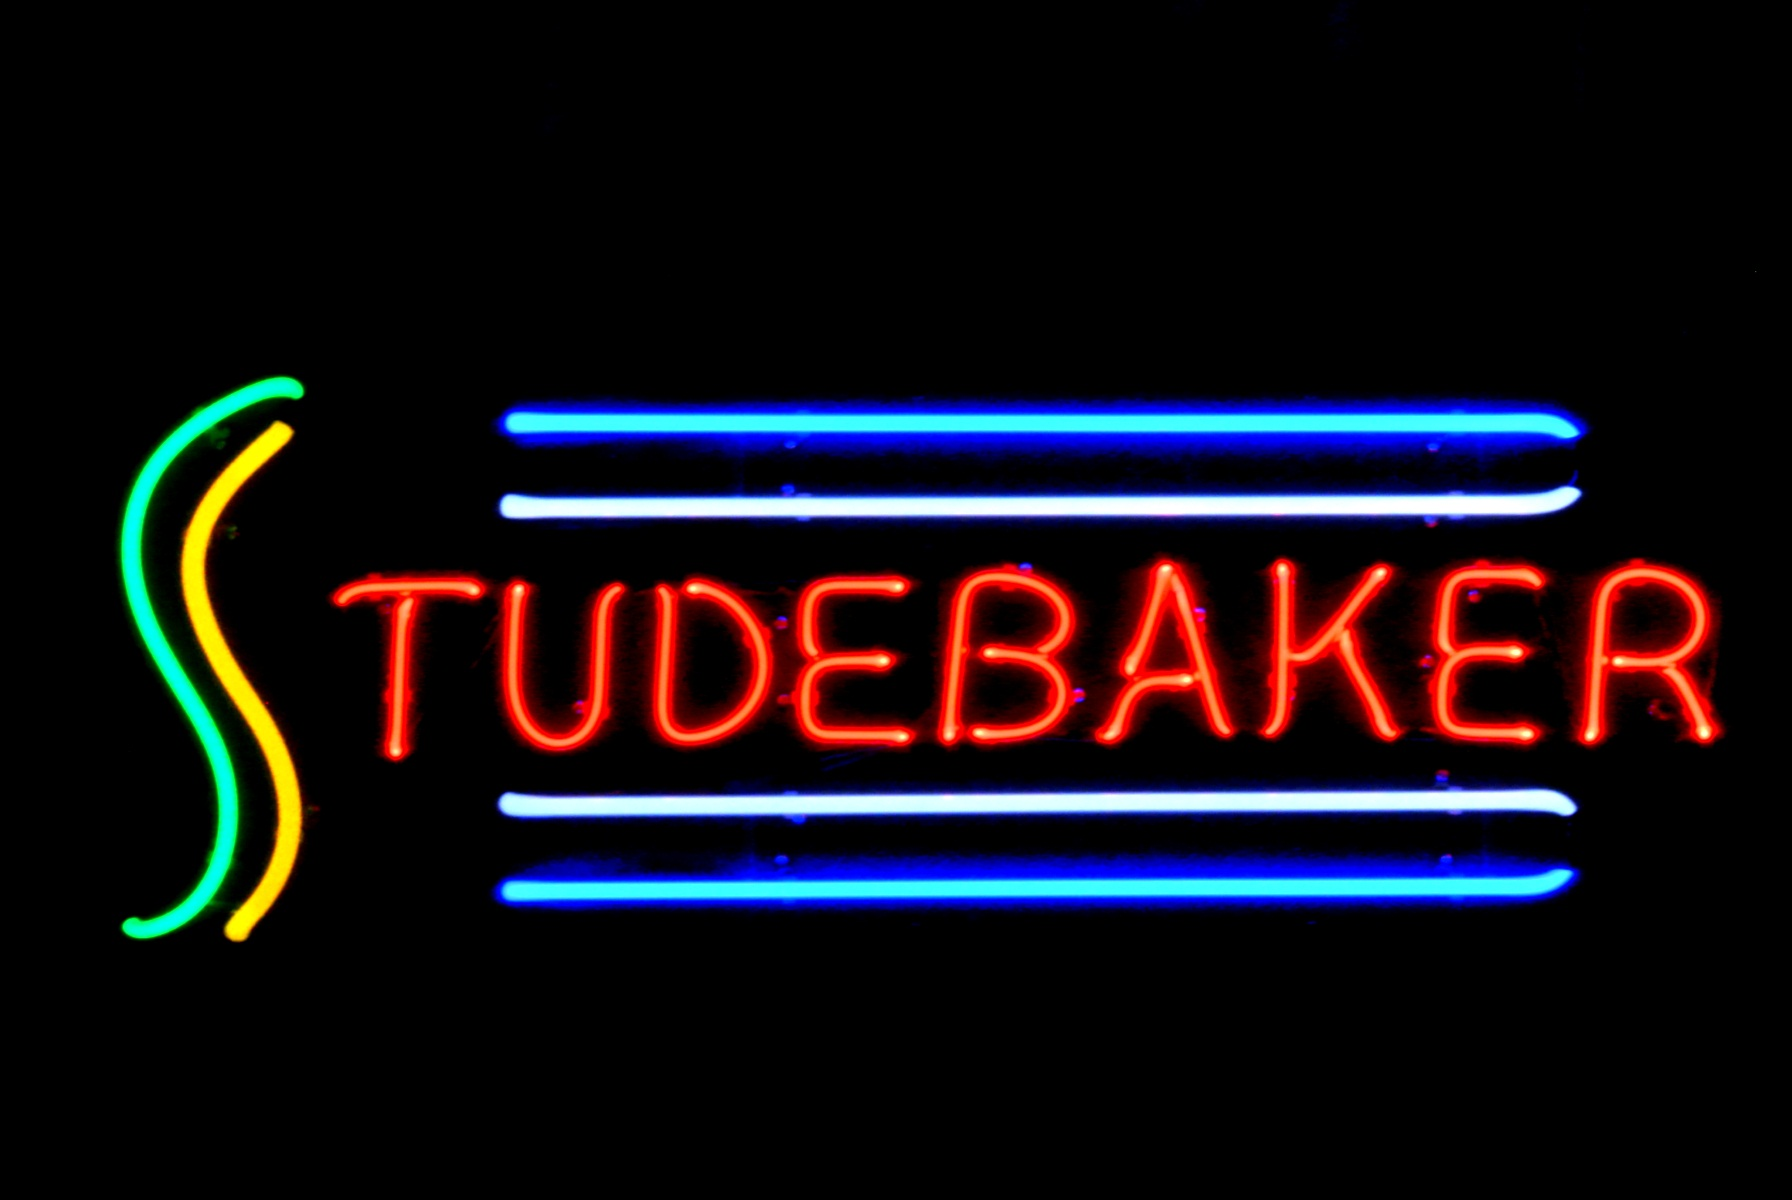 STUDEBAKER NEON SIGNS - BY JOHN BARTON - FORMER STUDEBAKER PACKARD NEW CAR DEALER - BartonNeonMagic.com